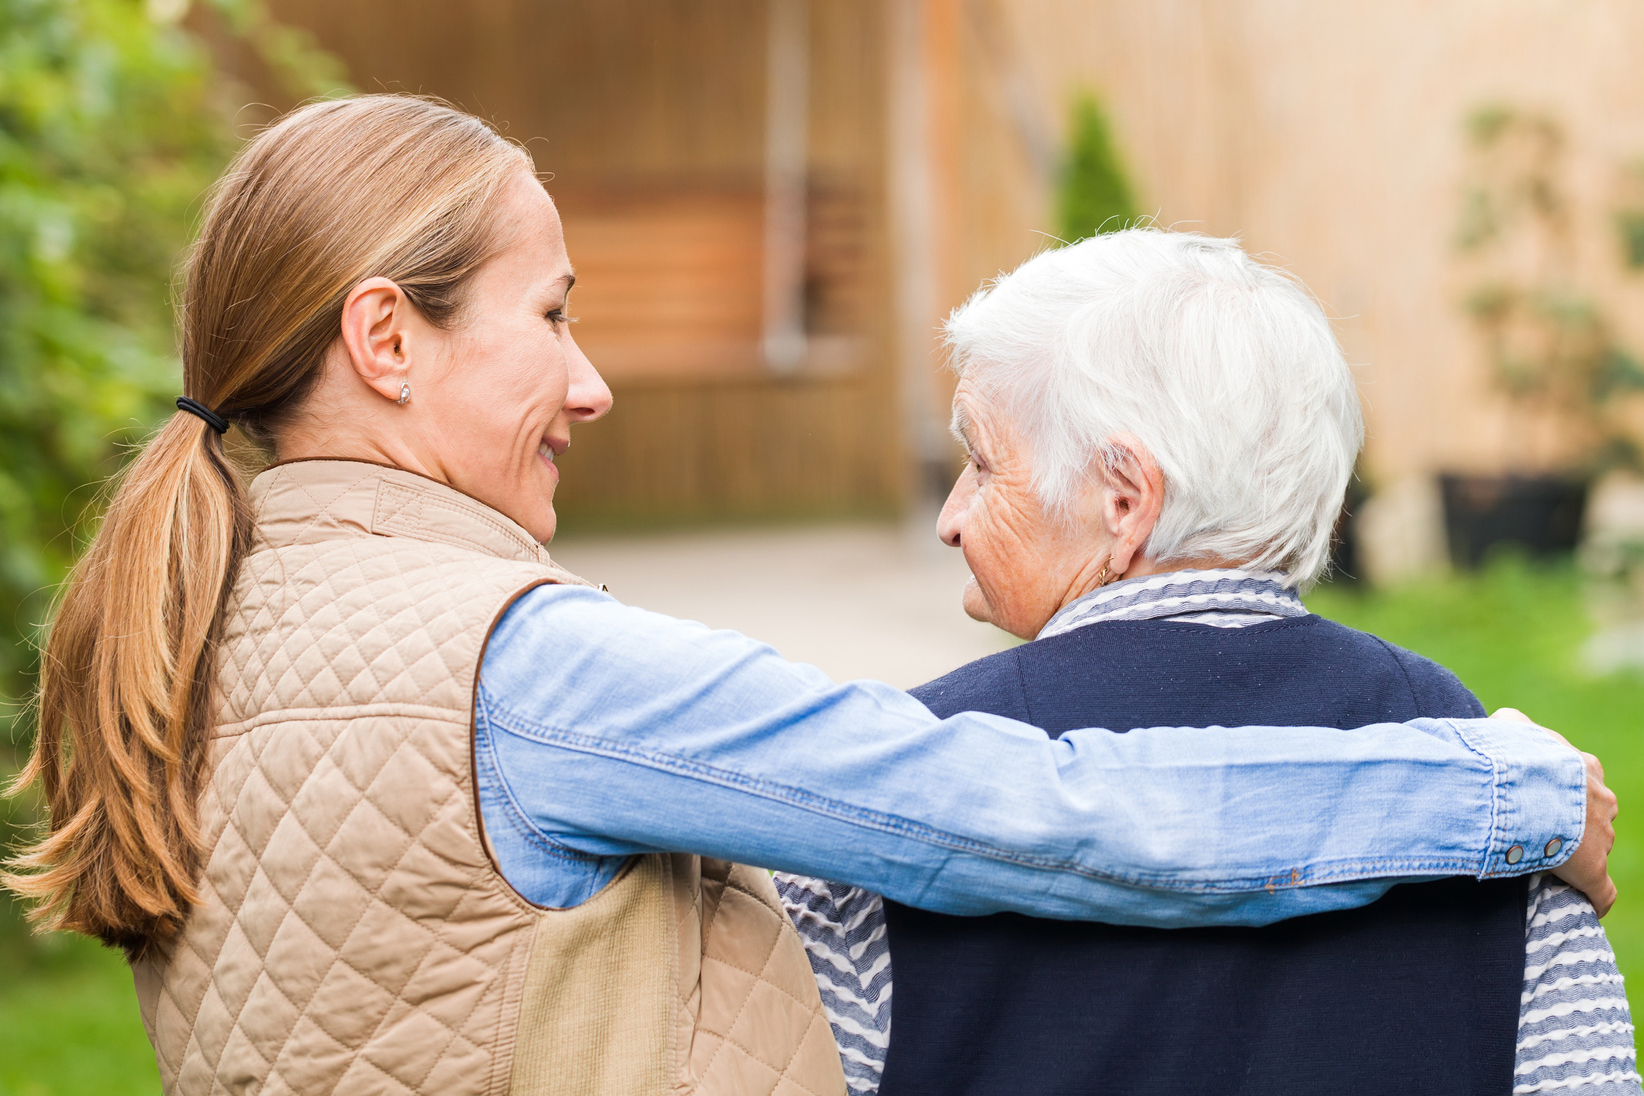 5 Communication Tips When a Loved One Has Alzheimer's